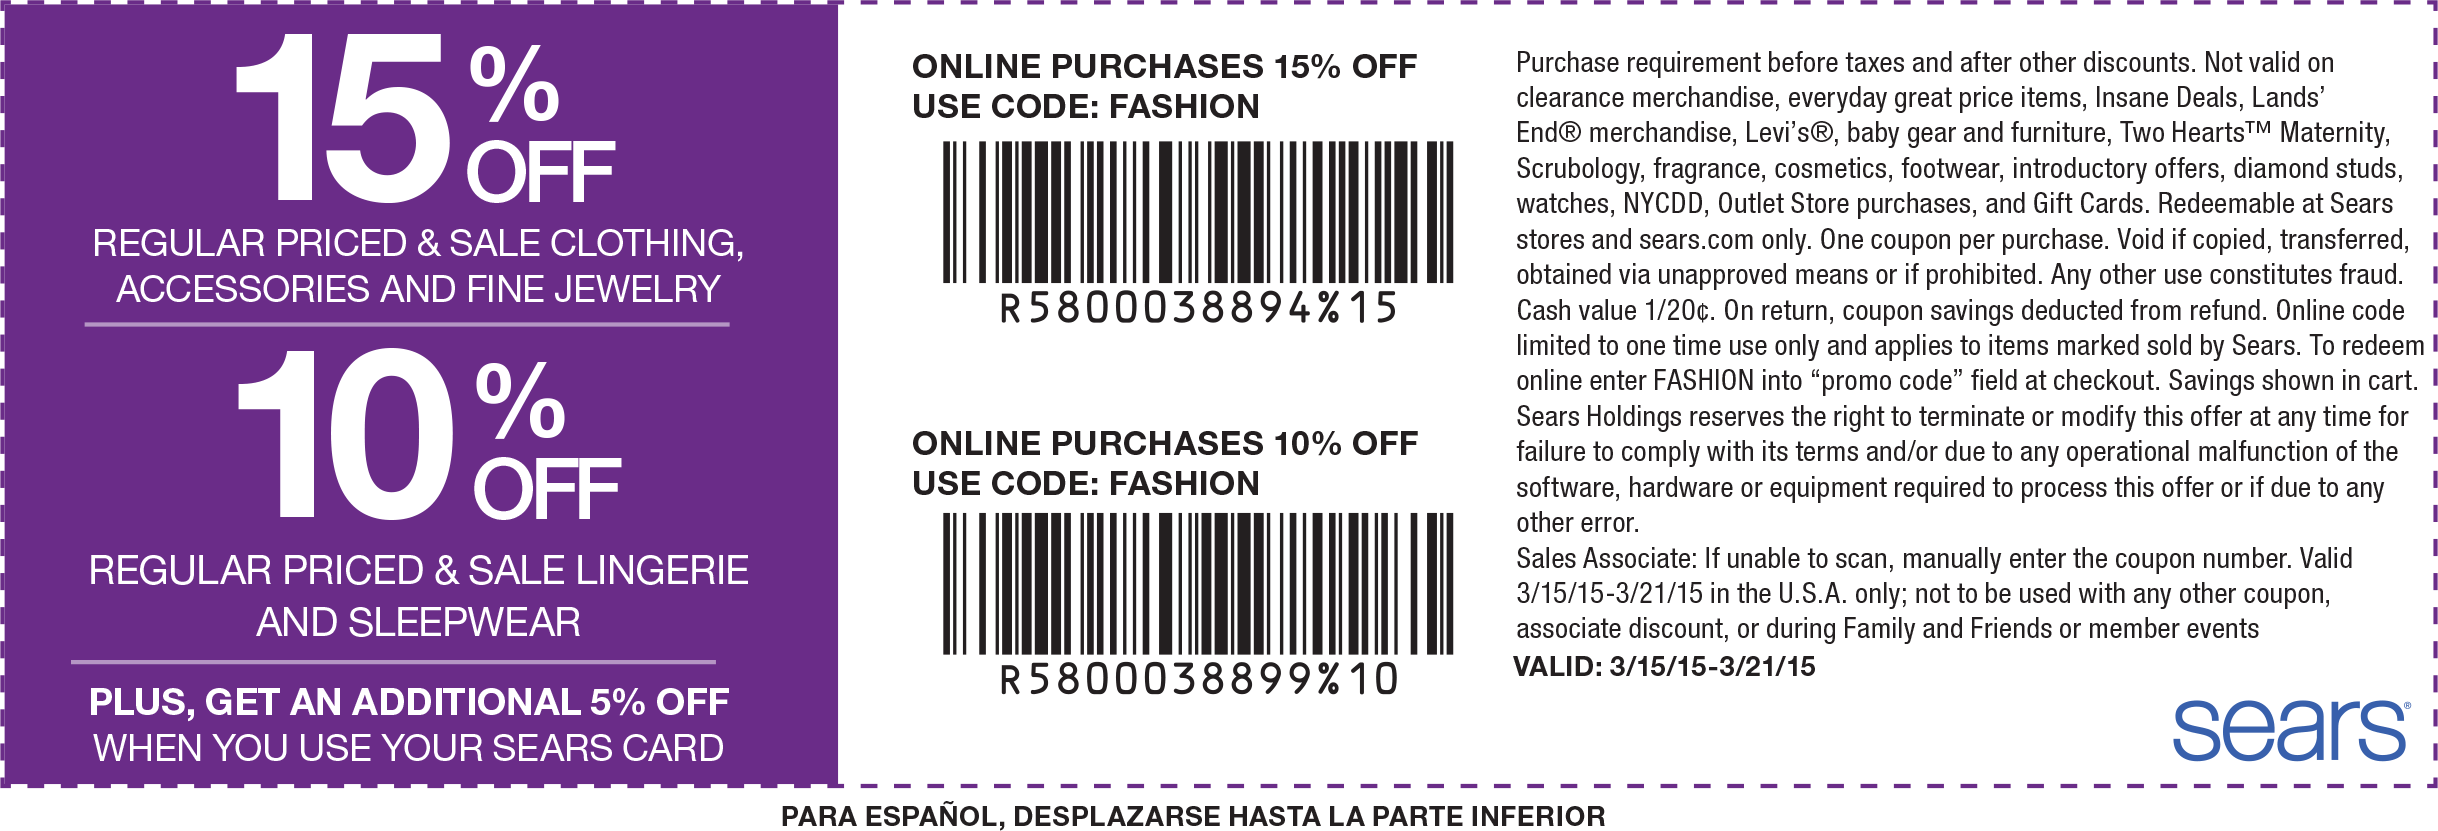 Sears Coupon April 2017 15% off apparel at Sears, or online via promo code FASHION